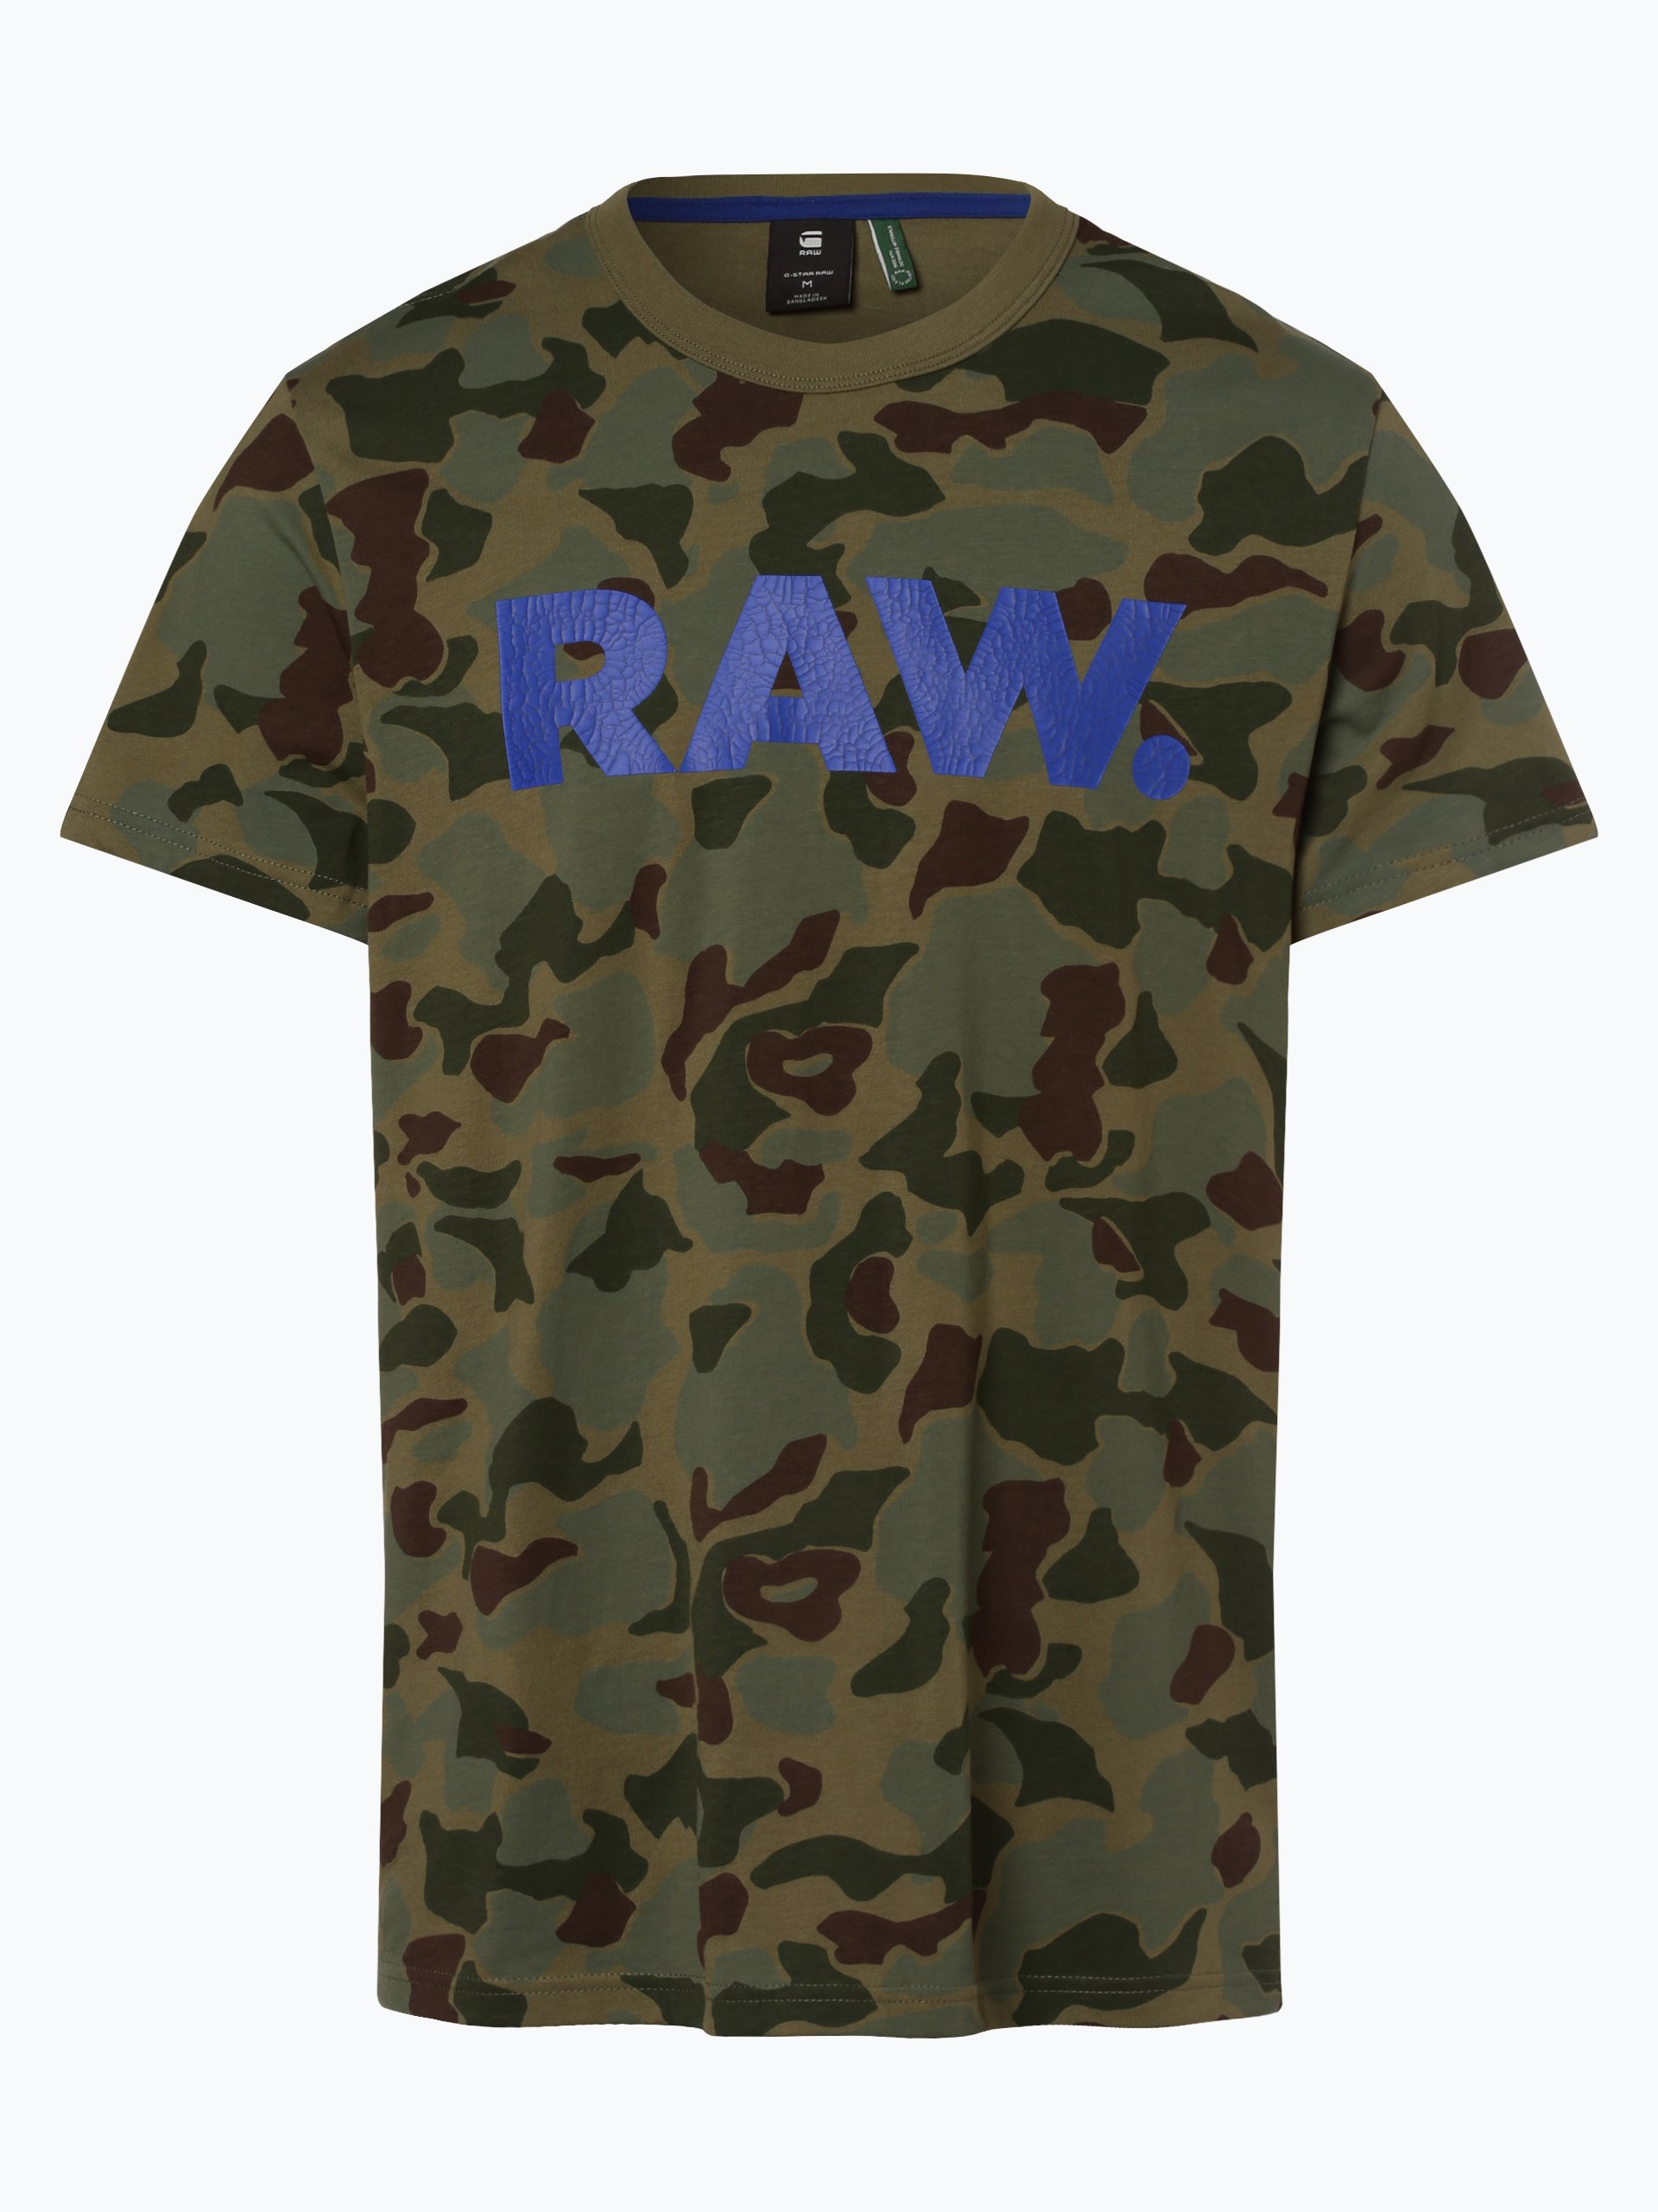 G-Star RAW T-shirt męski